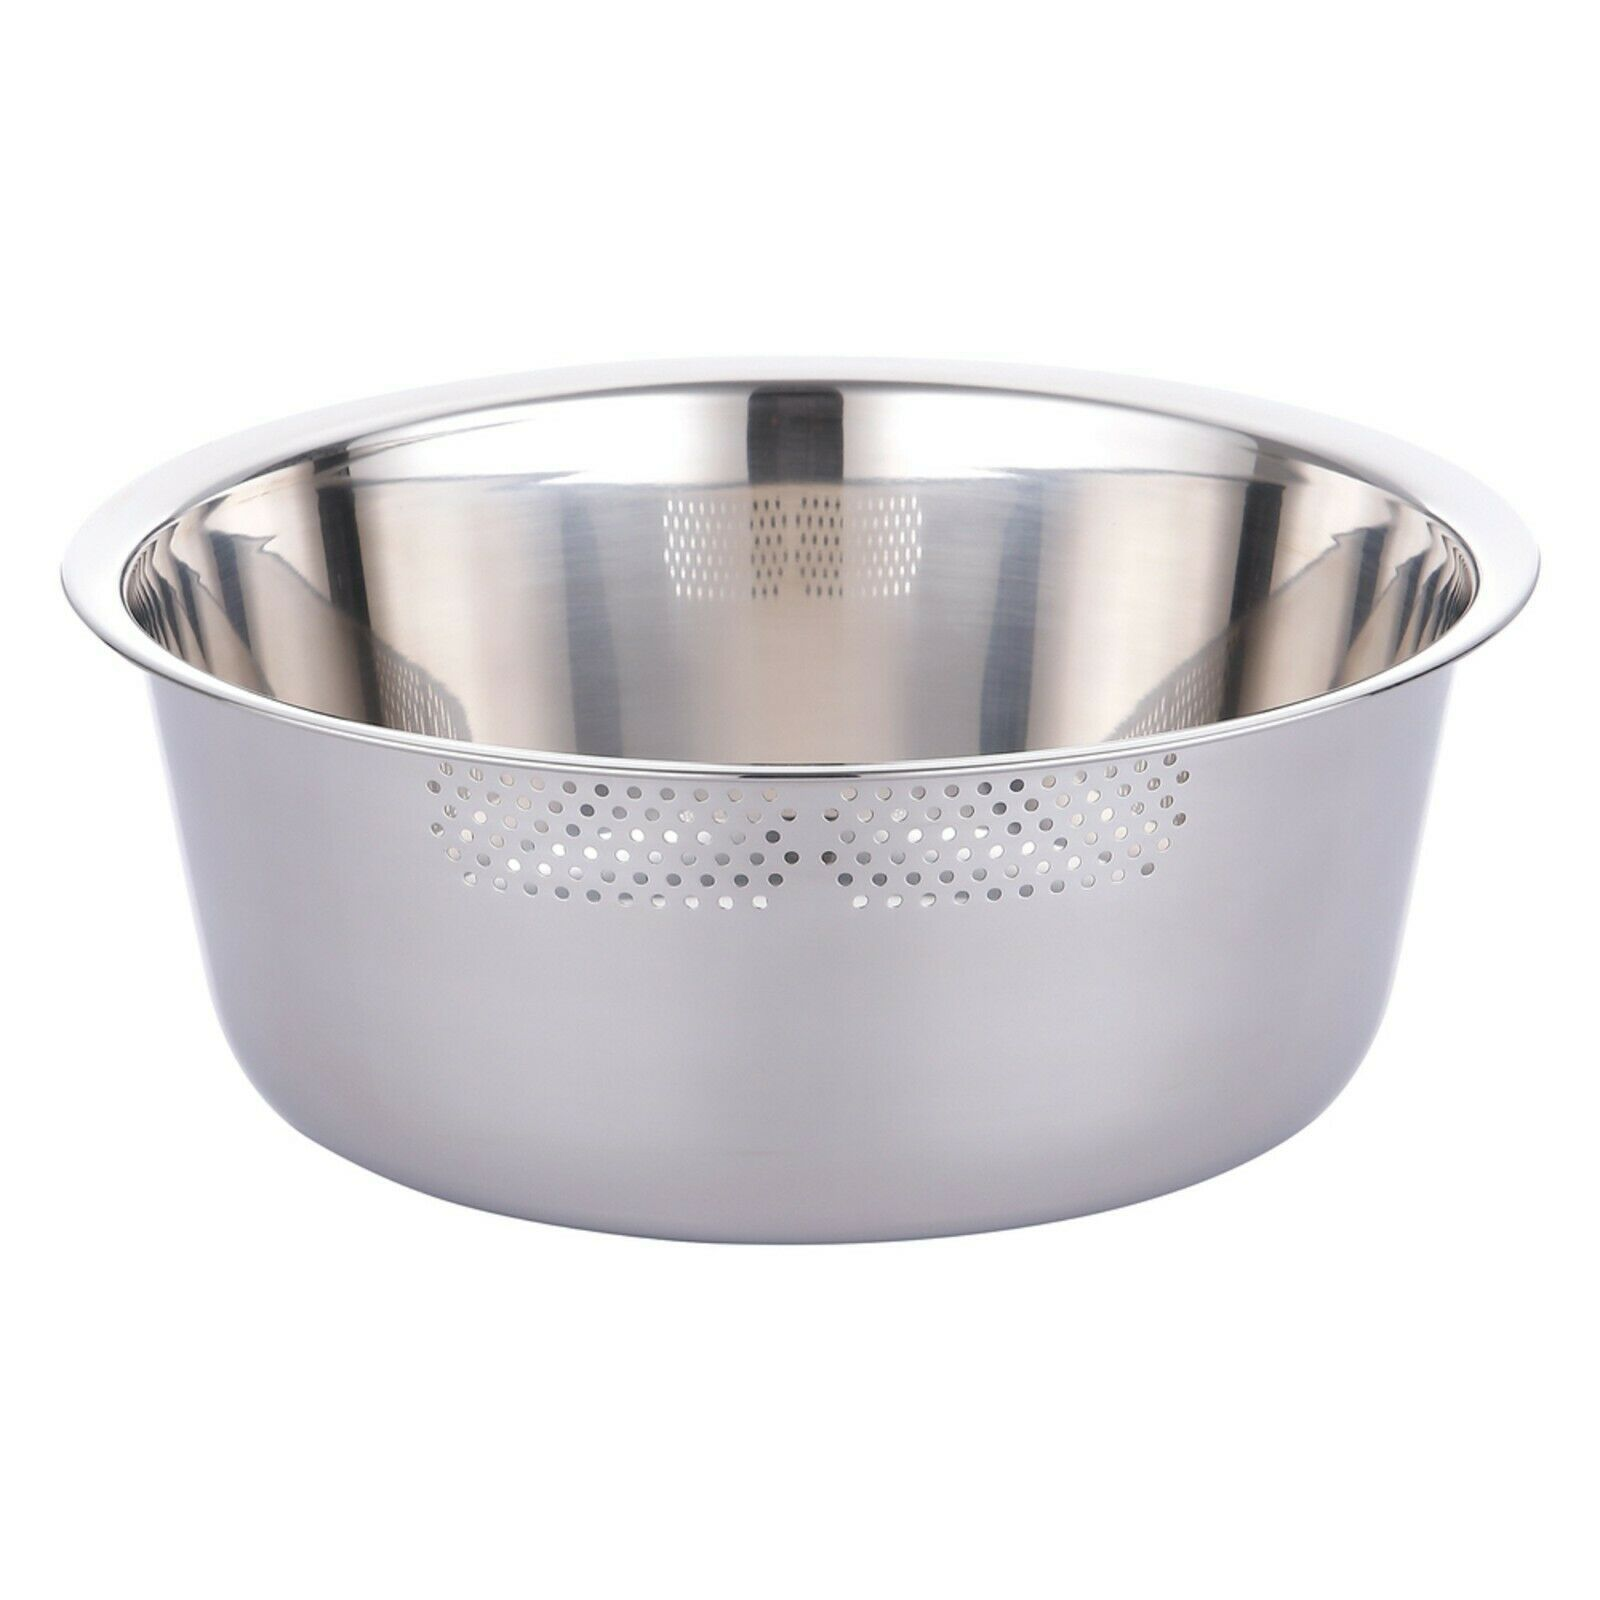 Kitchen Flower Round Stainless Steel Dishpan Basin Bucket Dish Washing up Bowl